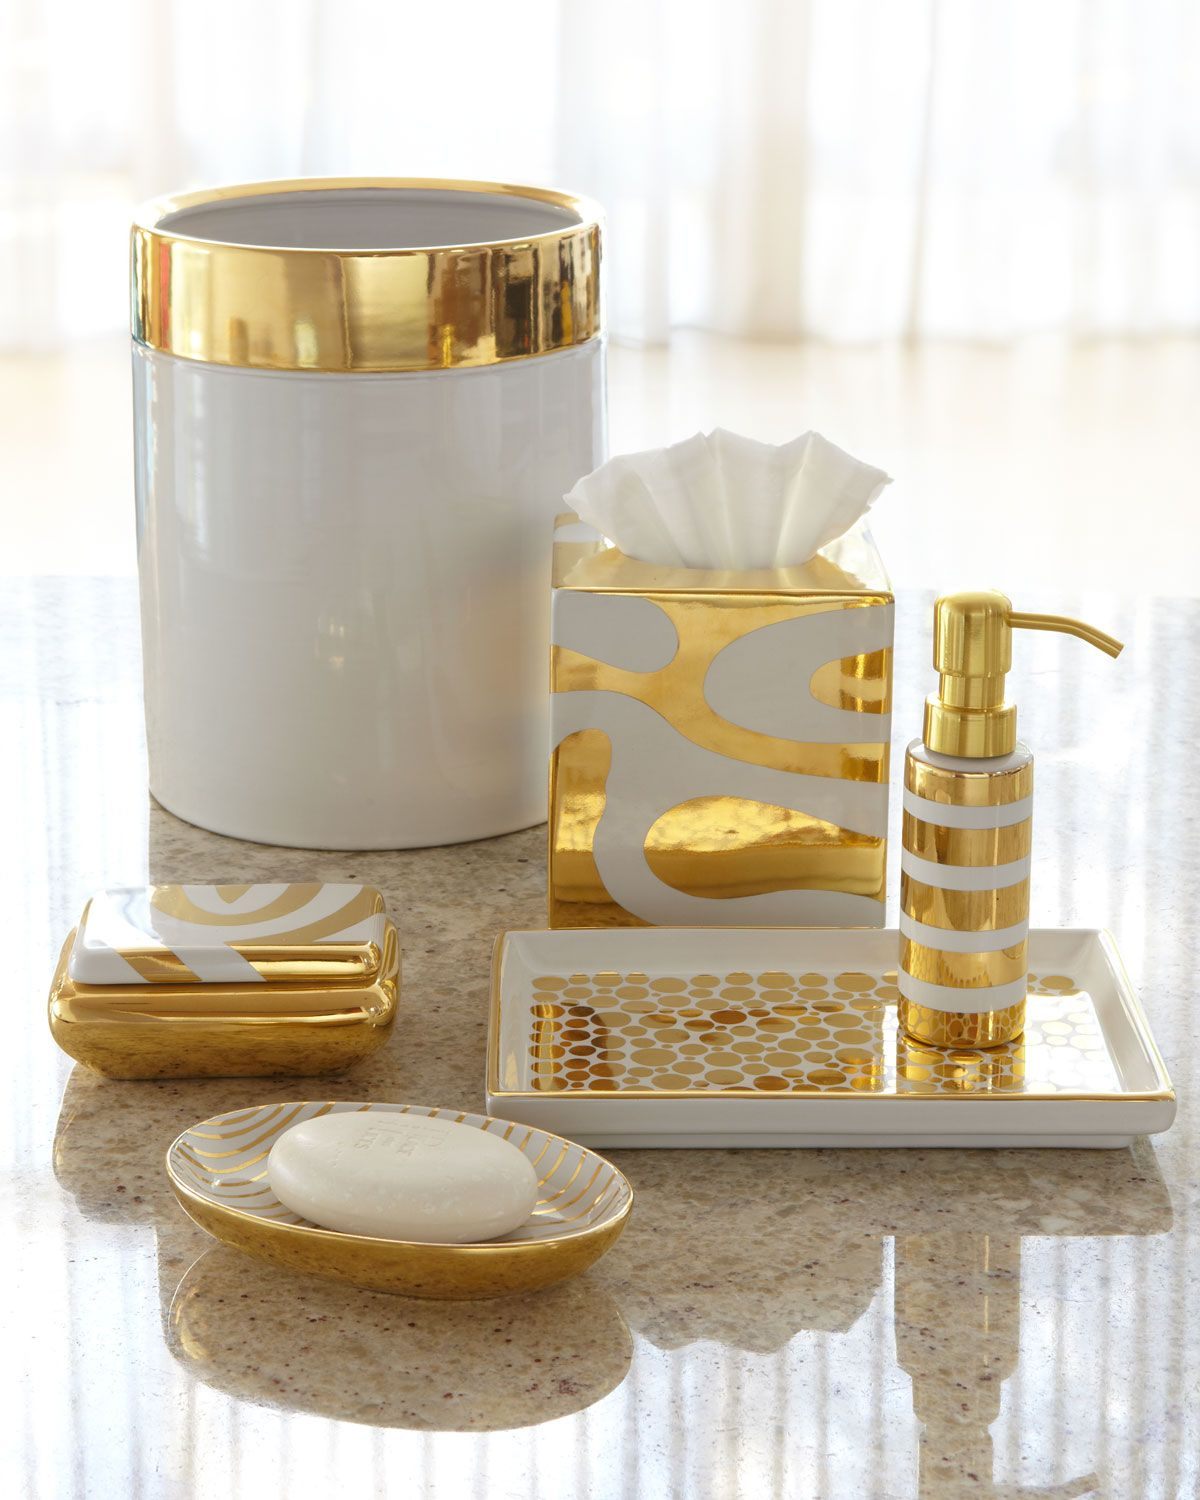 Bathroom Vanity Accessory Sets Vanity Tray By Waylande Gregory Porcelain Gold Vanity